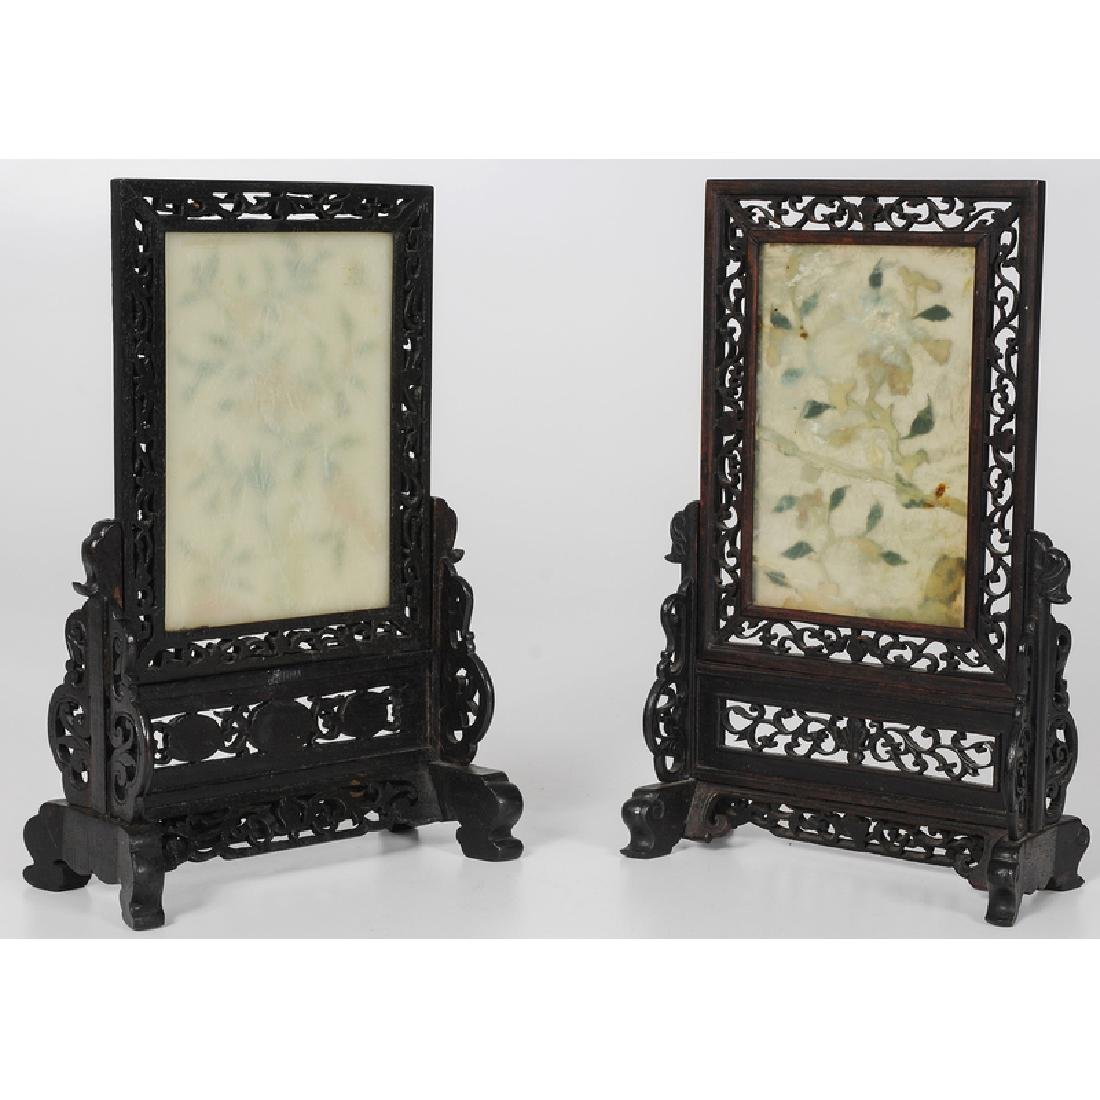 Chinese Hard Stone Screen in Rosewood Stands - 2